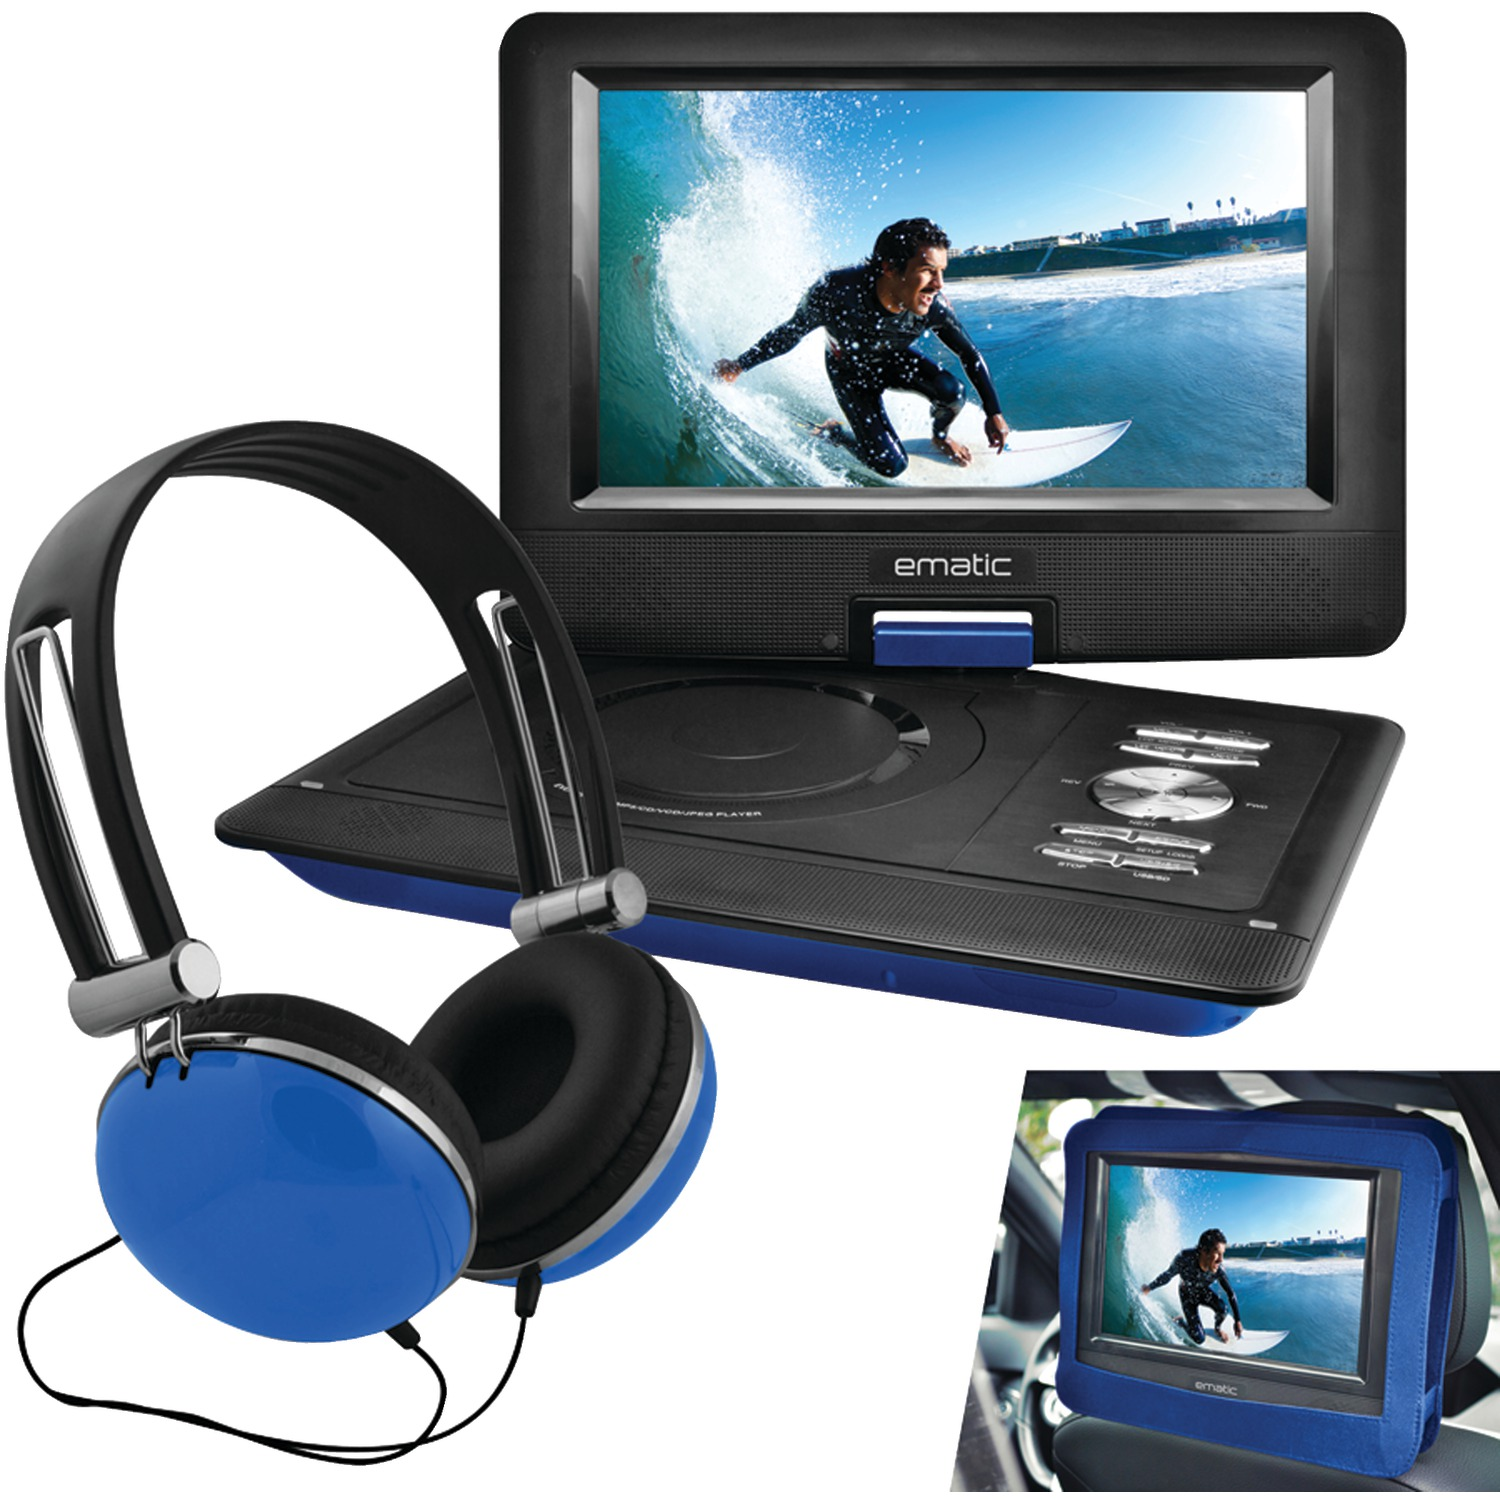 "Ematic EPD116BU 10"" Portable DVD Player with Headphones & Car-Headrest Mount - Blue"